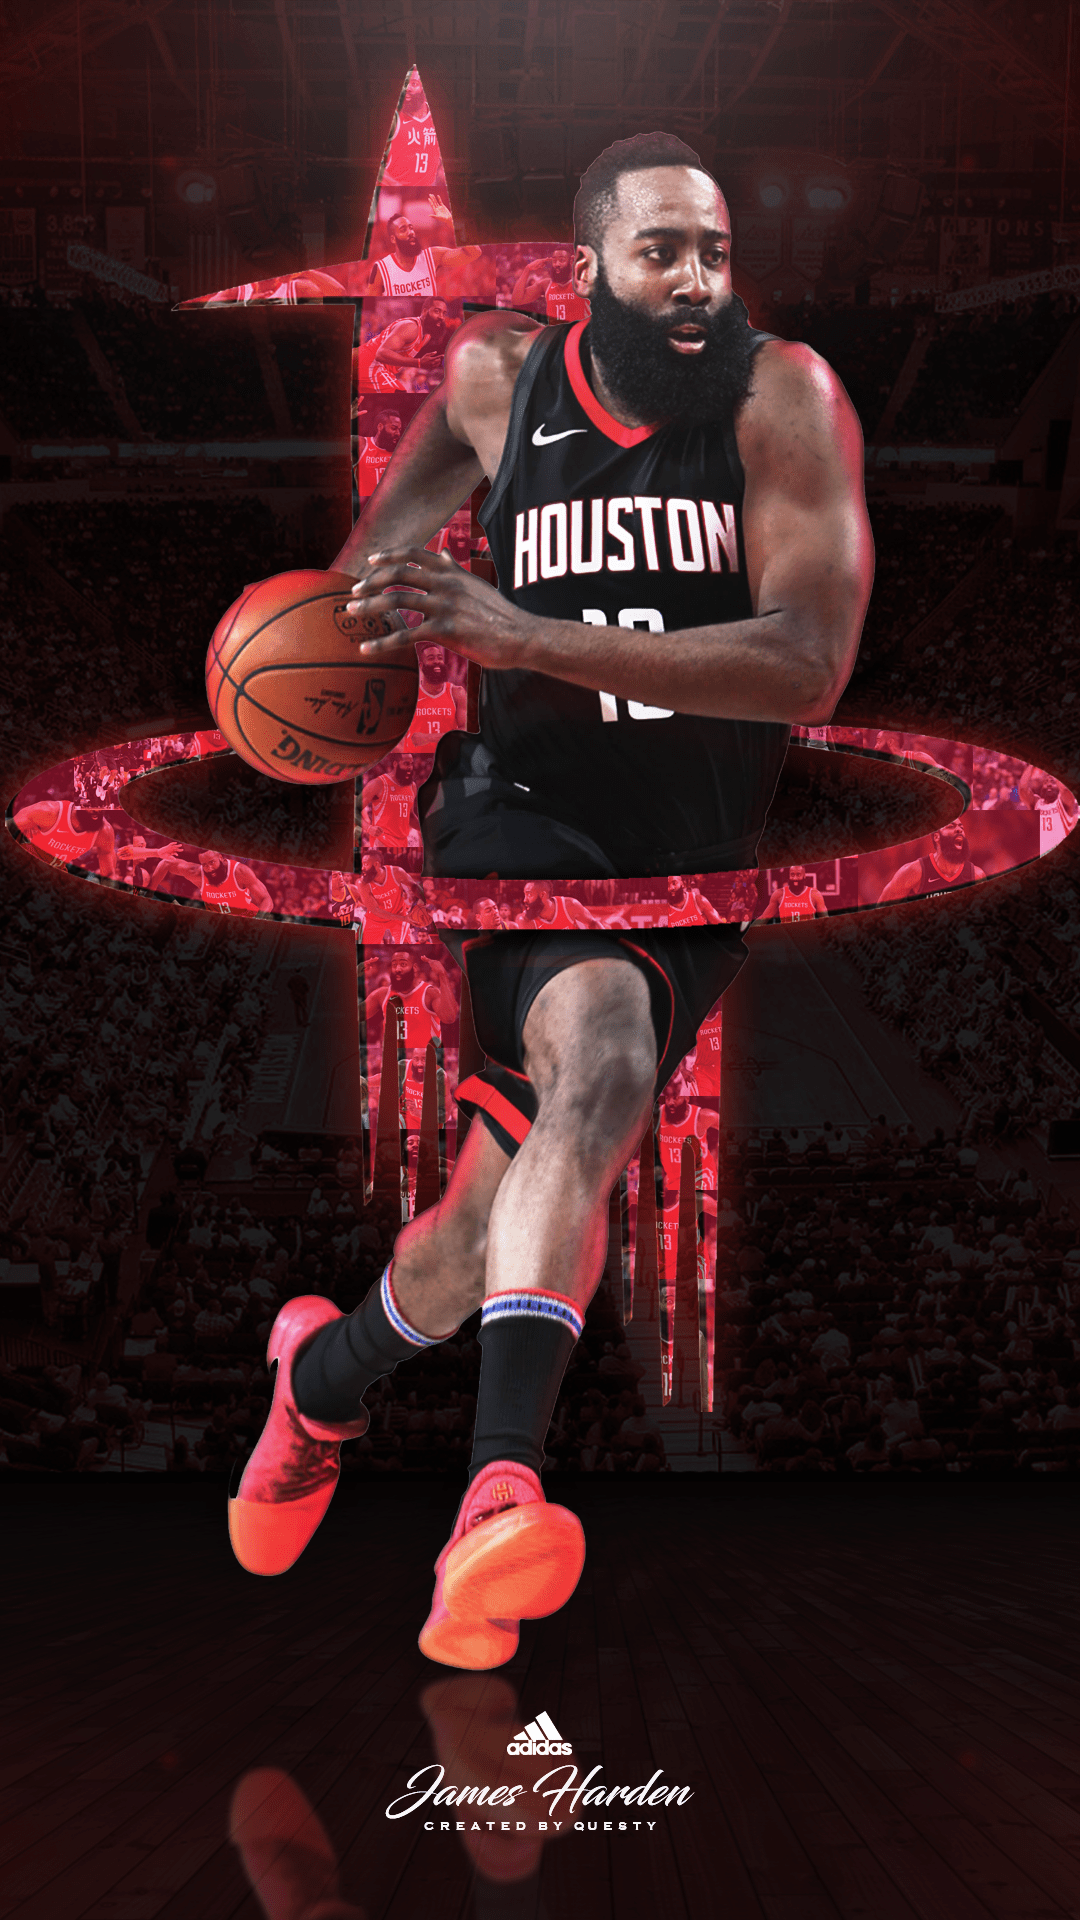 James Harden Iphone Wallpaper Kolpaper Awesome Free Hd Wallpapers